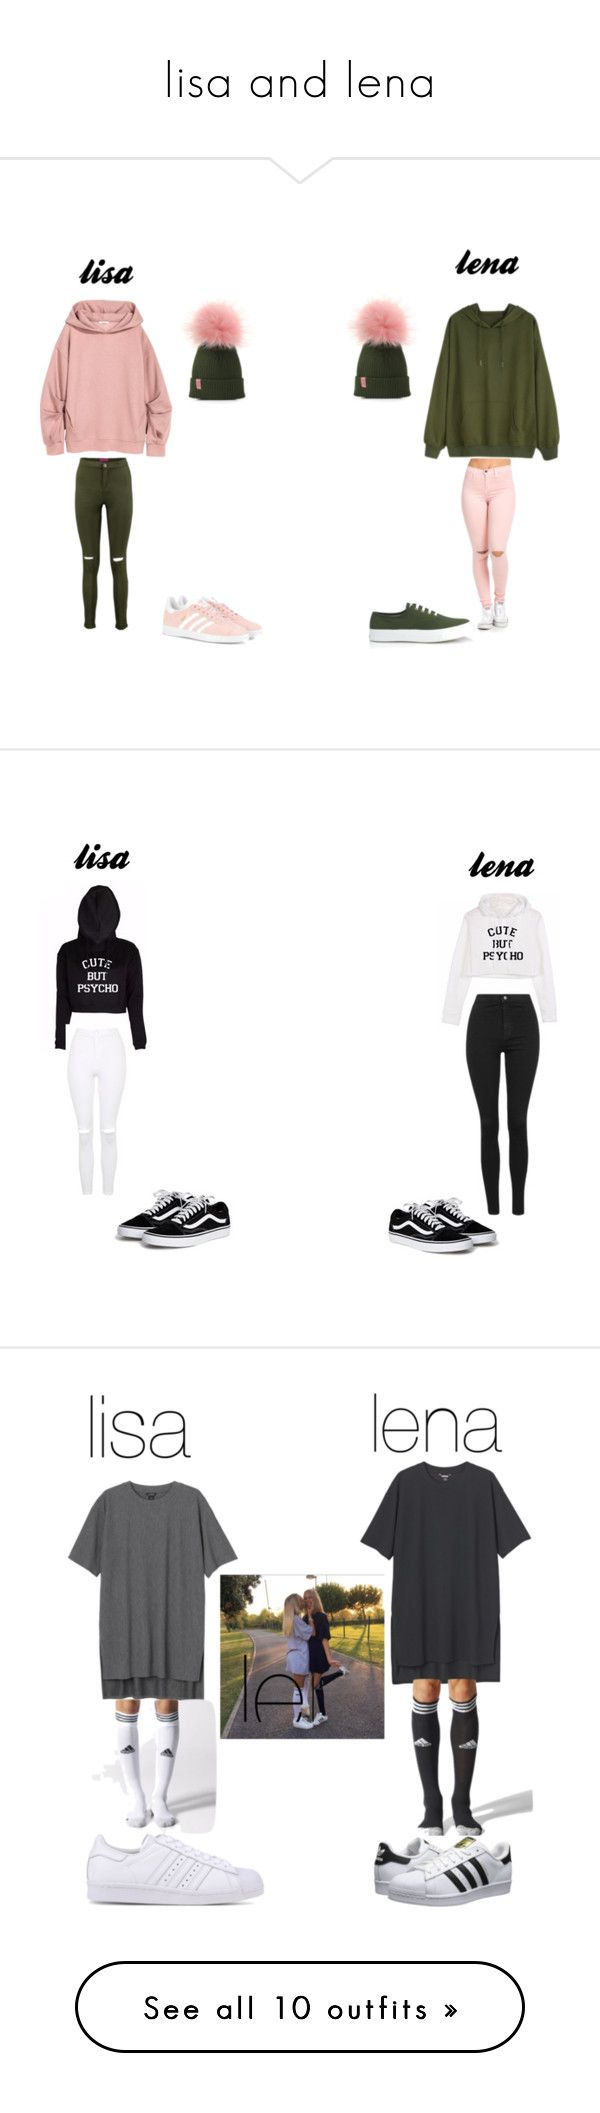 """lisa and lena"" by aestheticislife101 ❤ liked on Polyvore featuring Boohoo, Maison Kitsuné, adidas Originals, Topshop, Monki, adidas, 7 For All Mankind, Vans, Glamorous and Triangl"